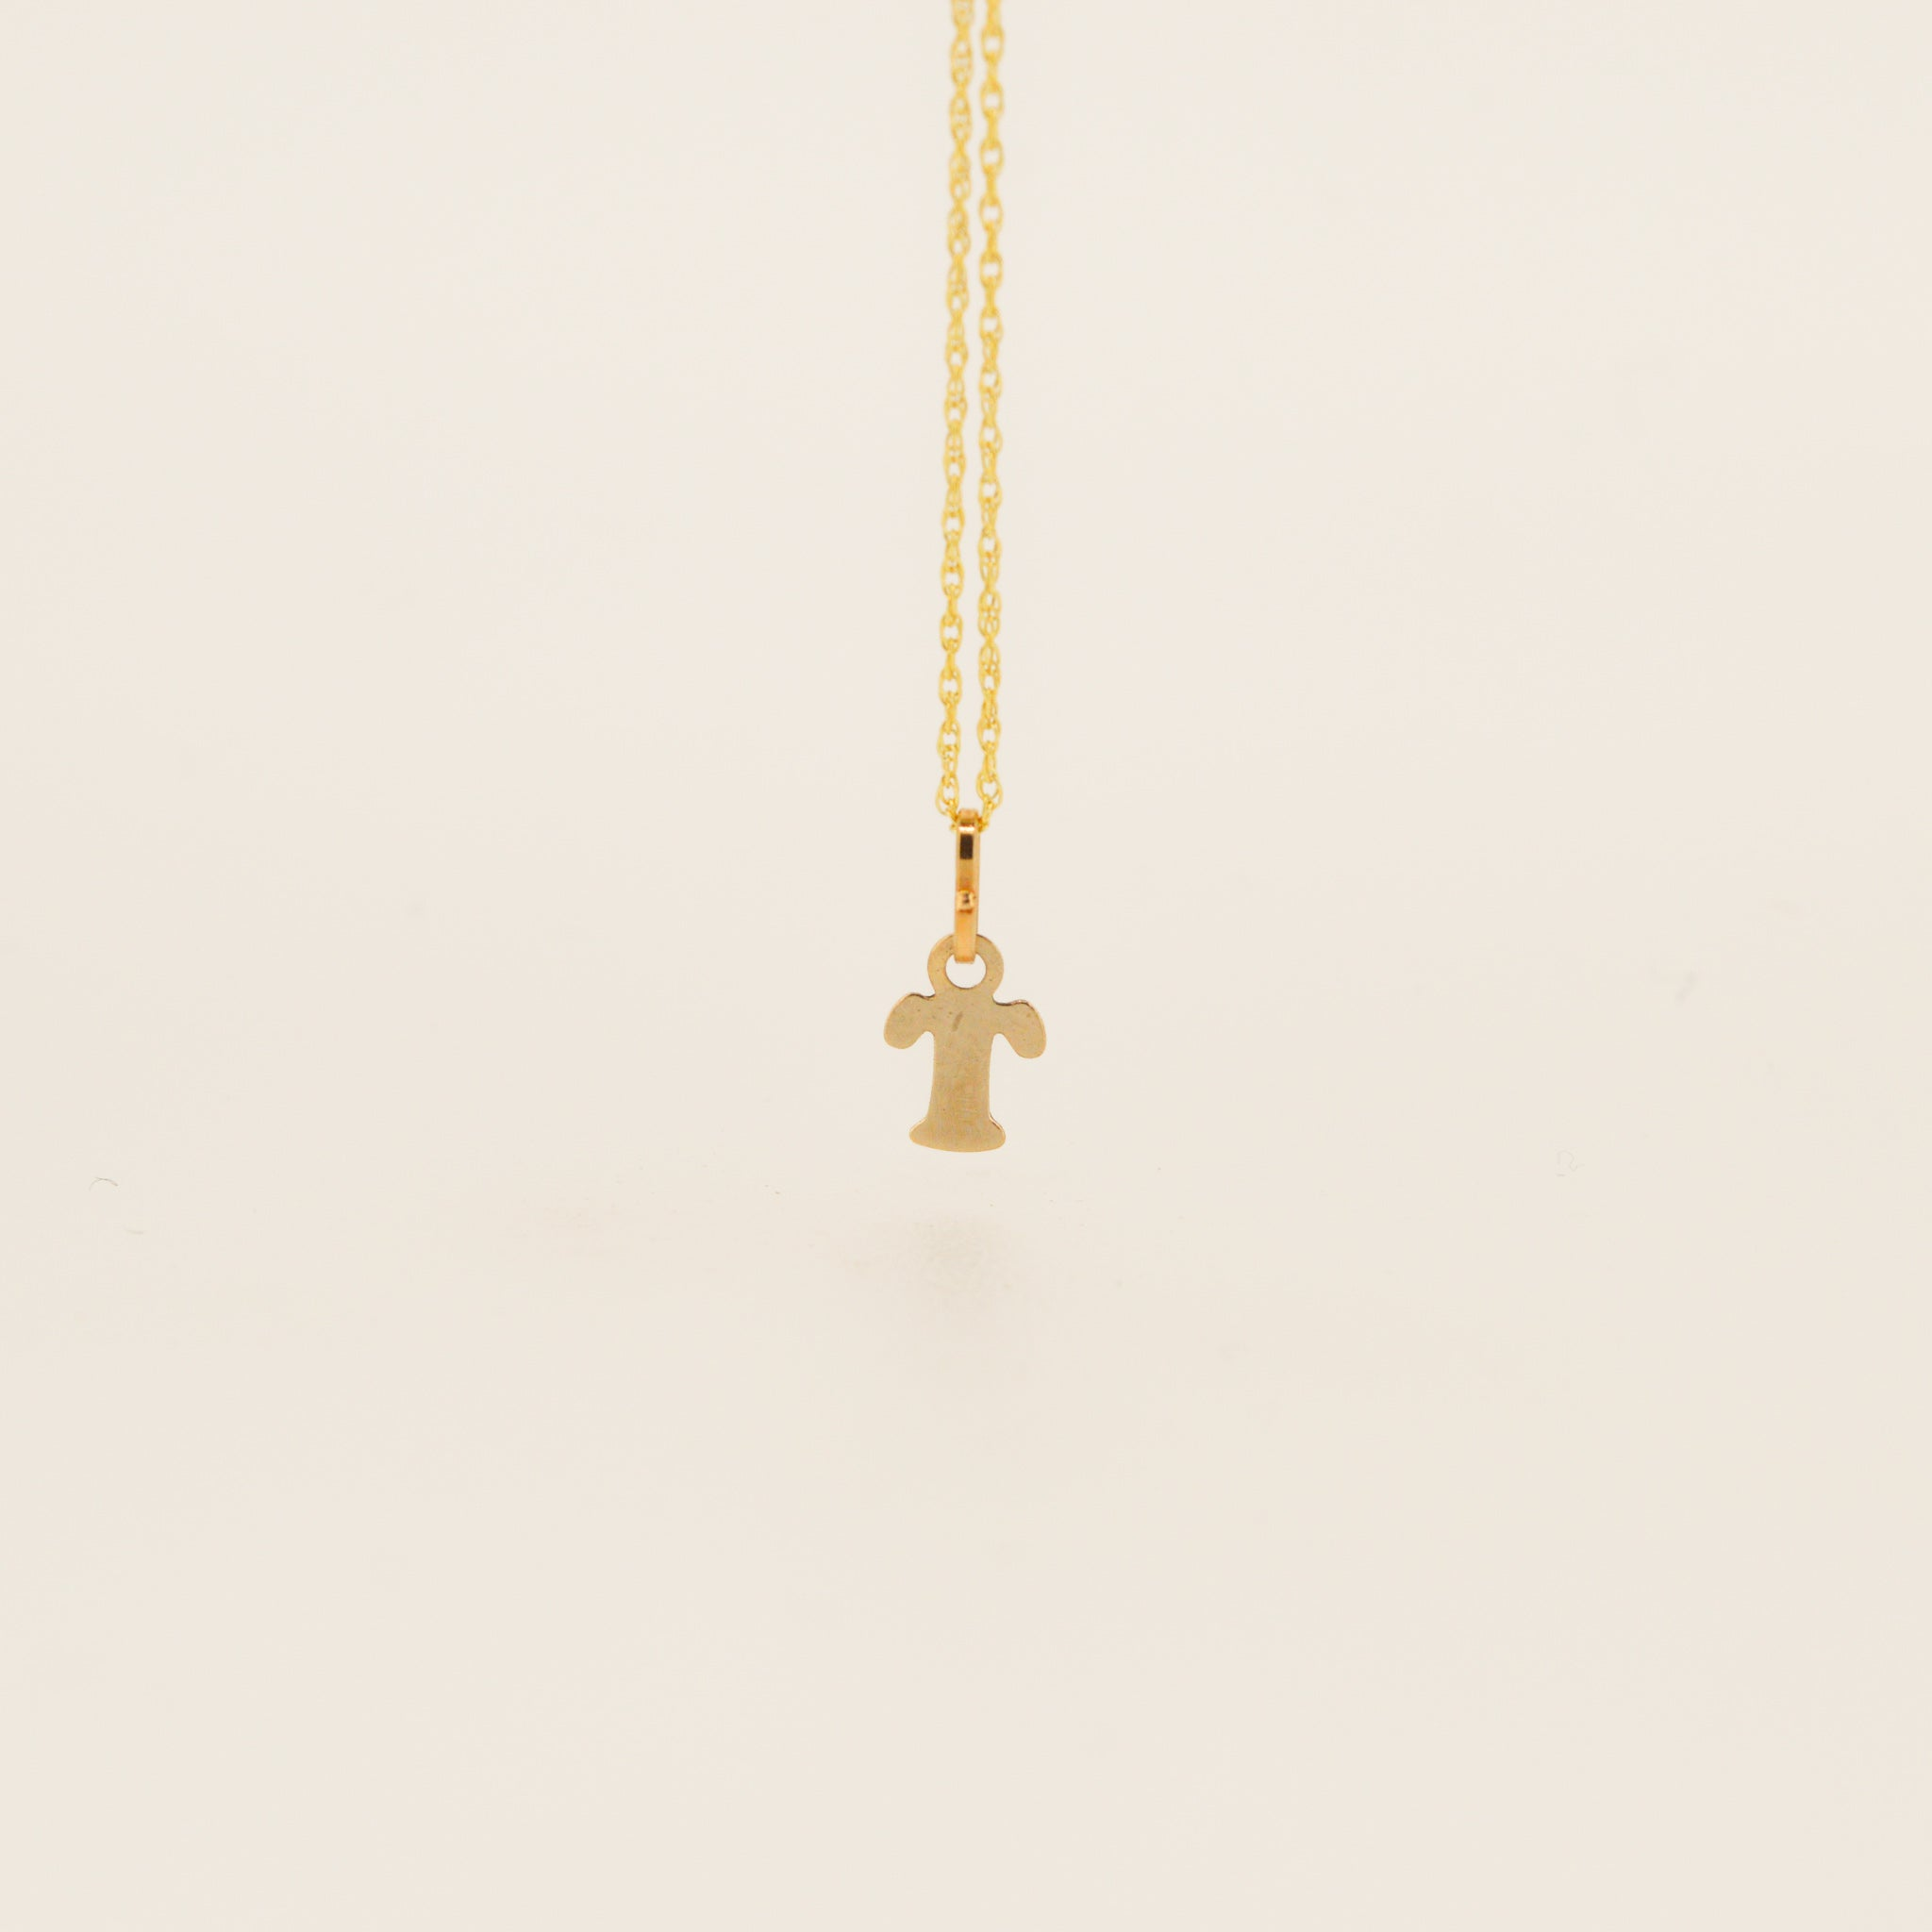 Miniature 9ct Gold T Initial Pendant